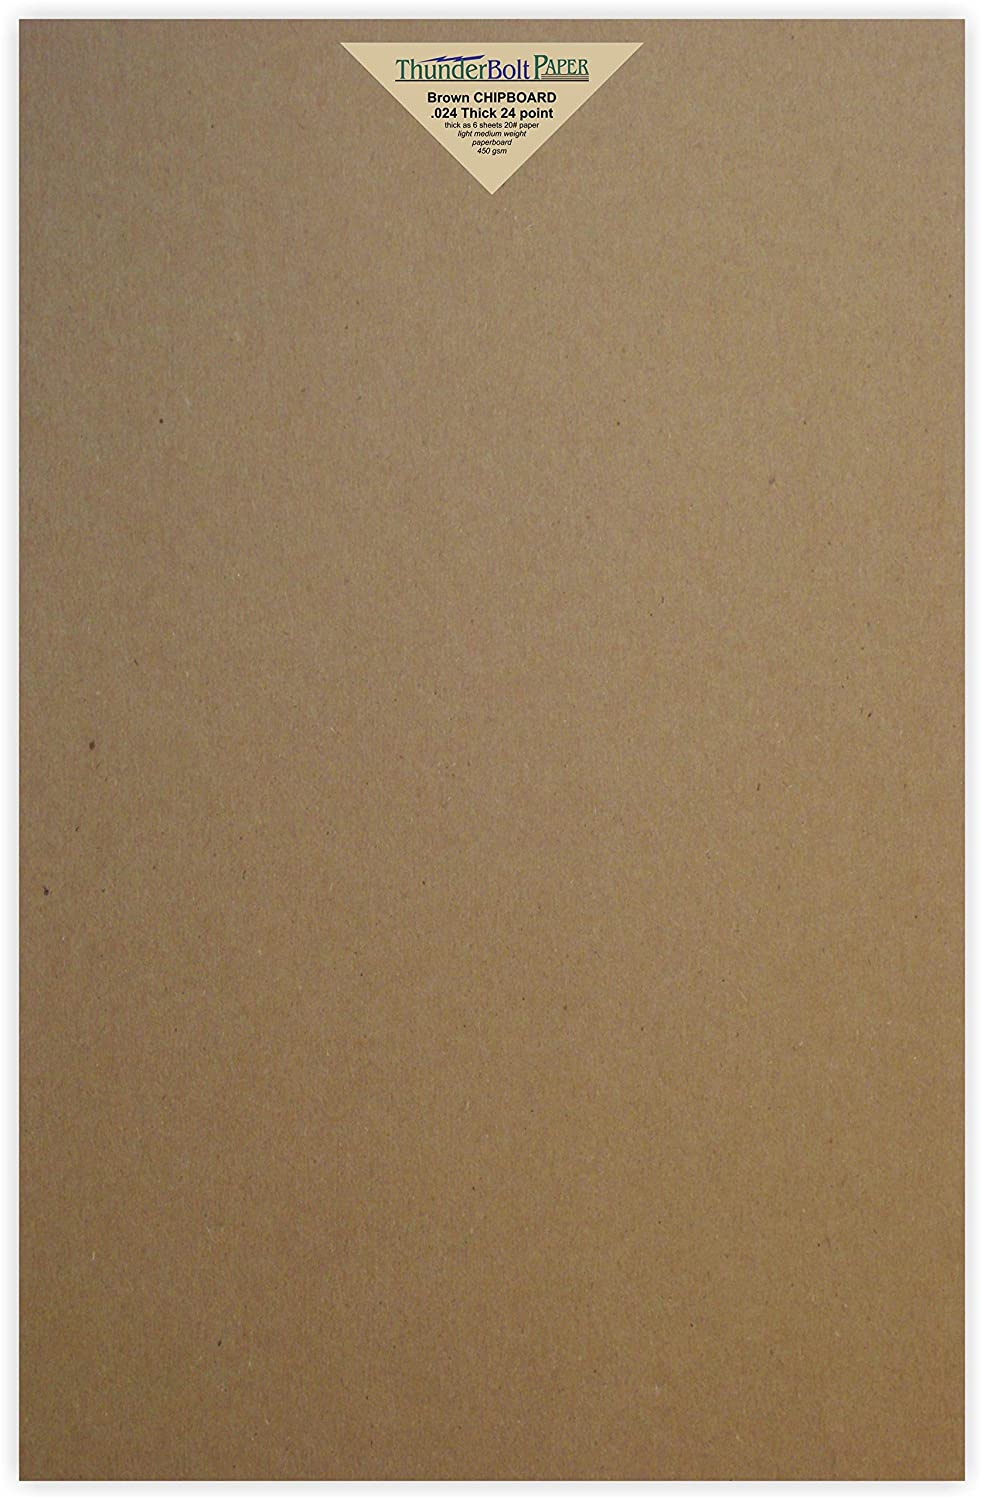 50 Sheets Chipboard 24pt (point) 11 X 17 Inches Light Medium Weight Tabloid Size .024 Caliper Thick Cardboard Craft Packaging Brown Kraft Paper Board TBP 4336978462